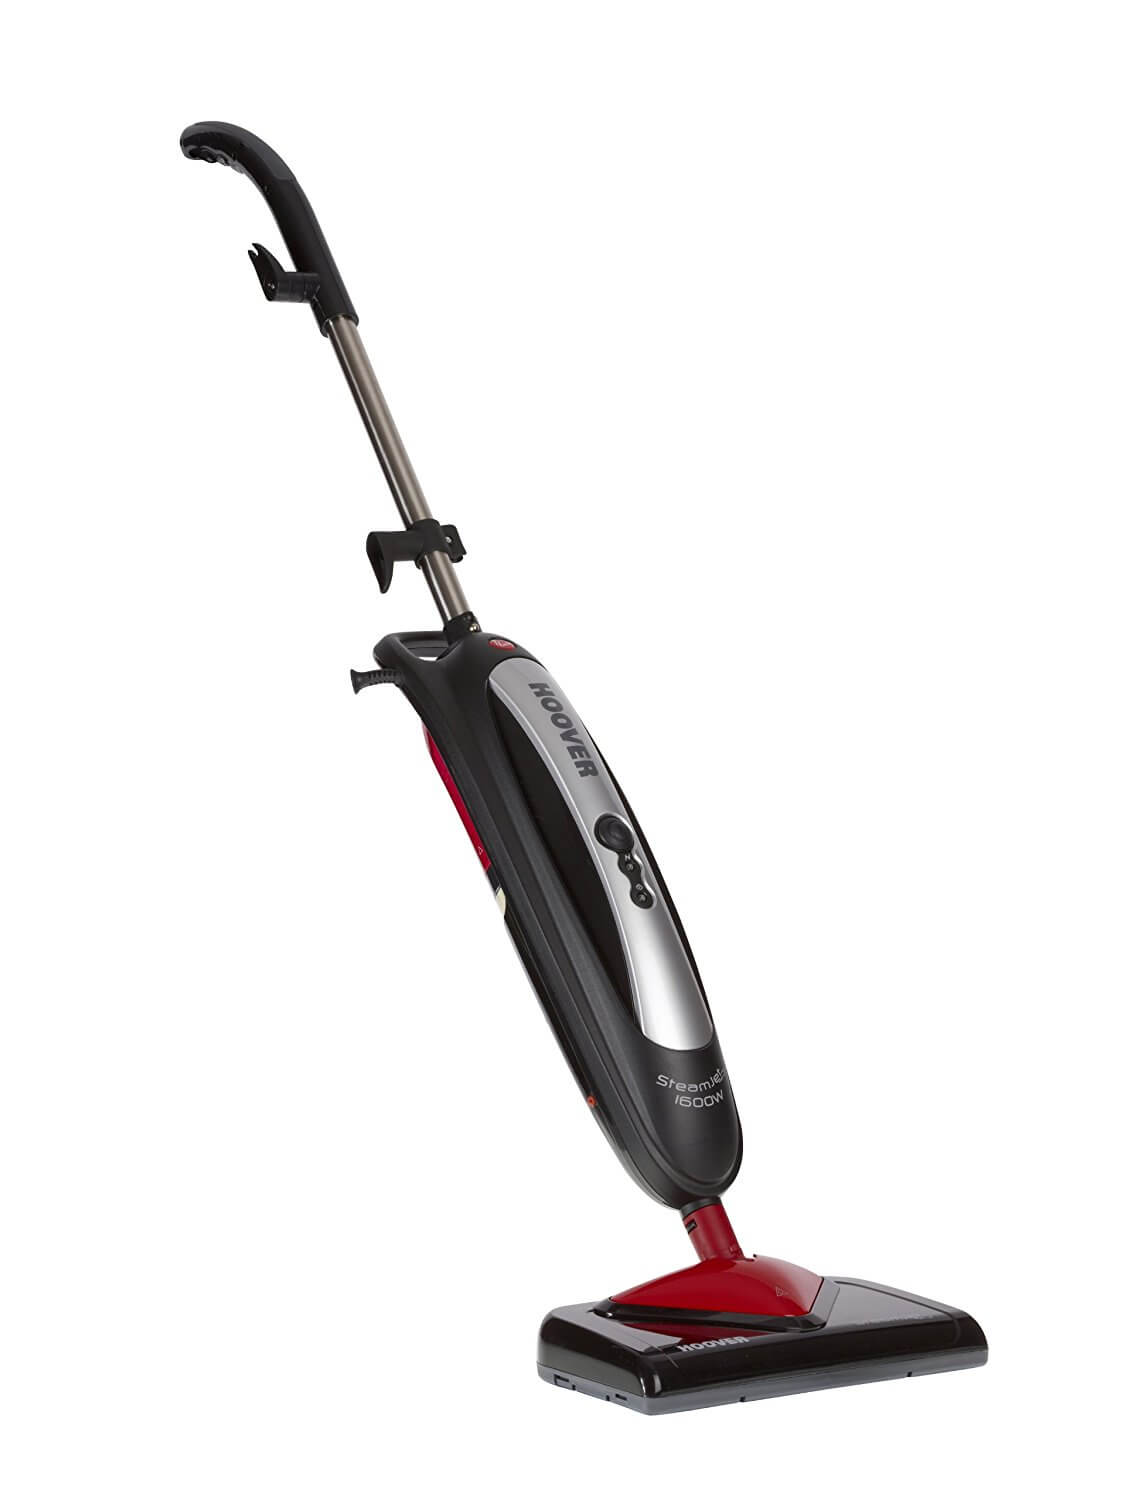 Hoover Steamjet Steam Mop Reviews : Dual Head Floor Steamer, Cleaner